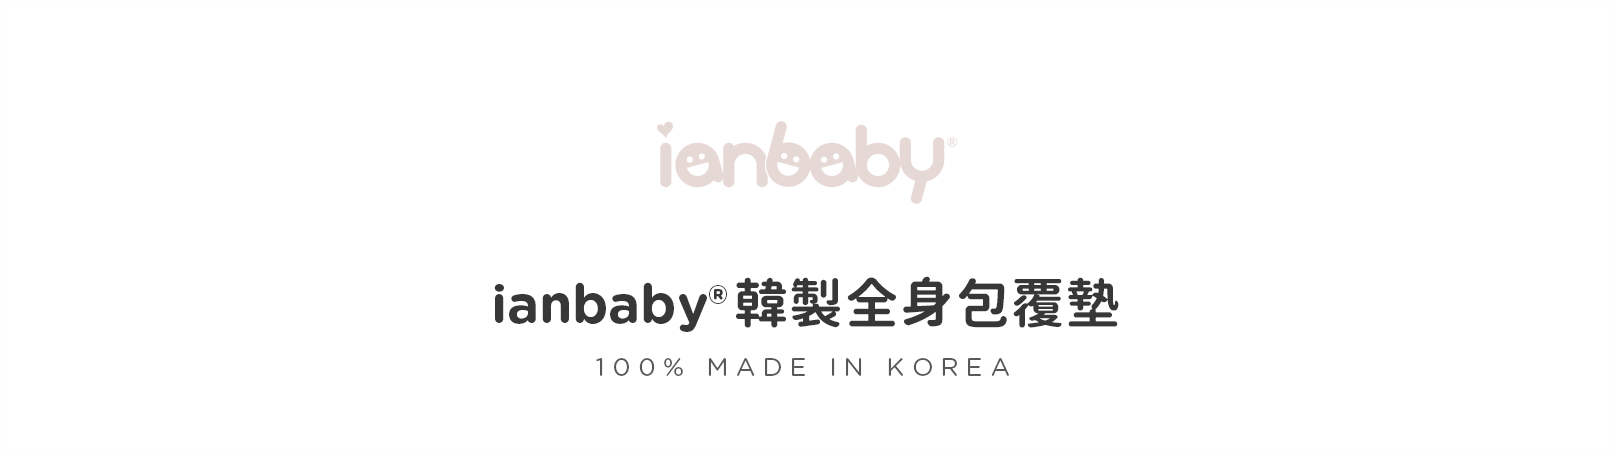 ianbaby-liner-2-1.png